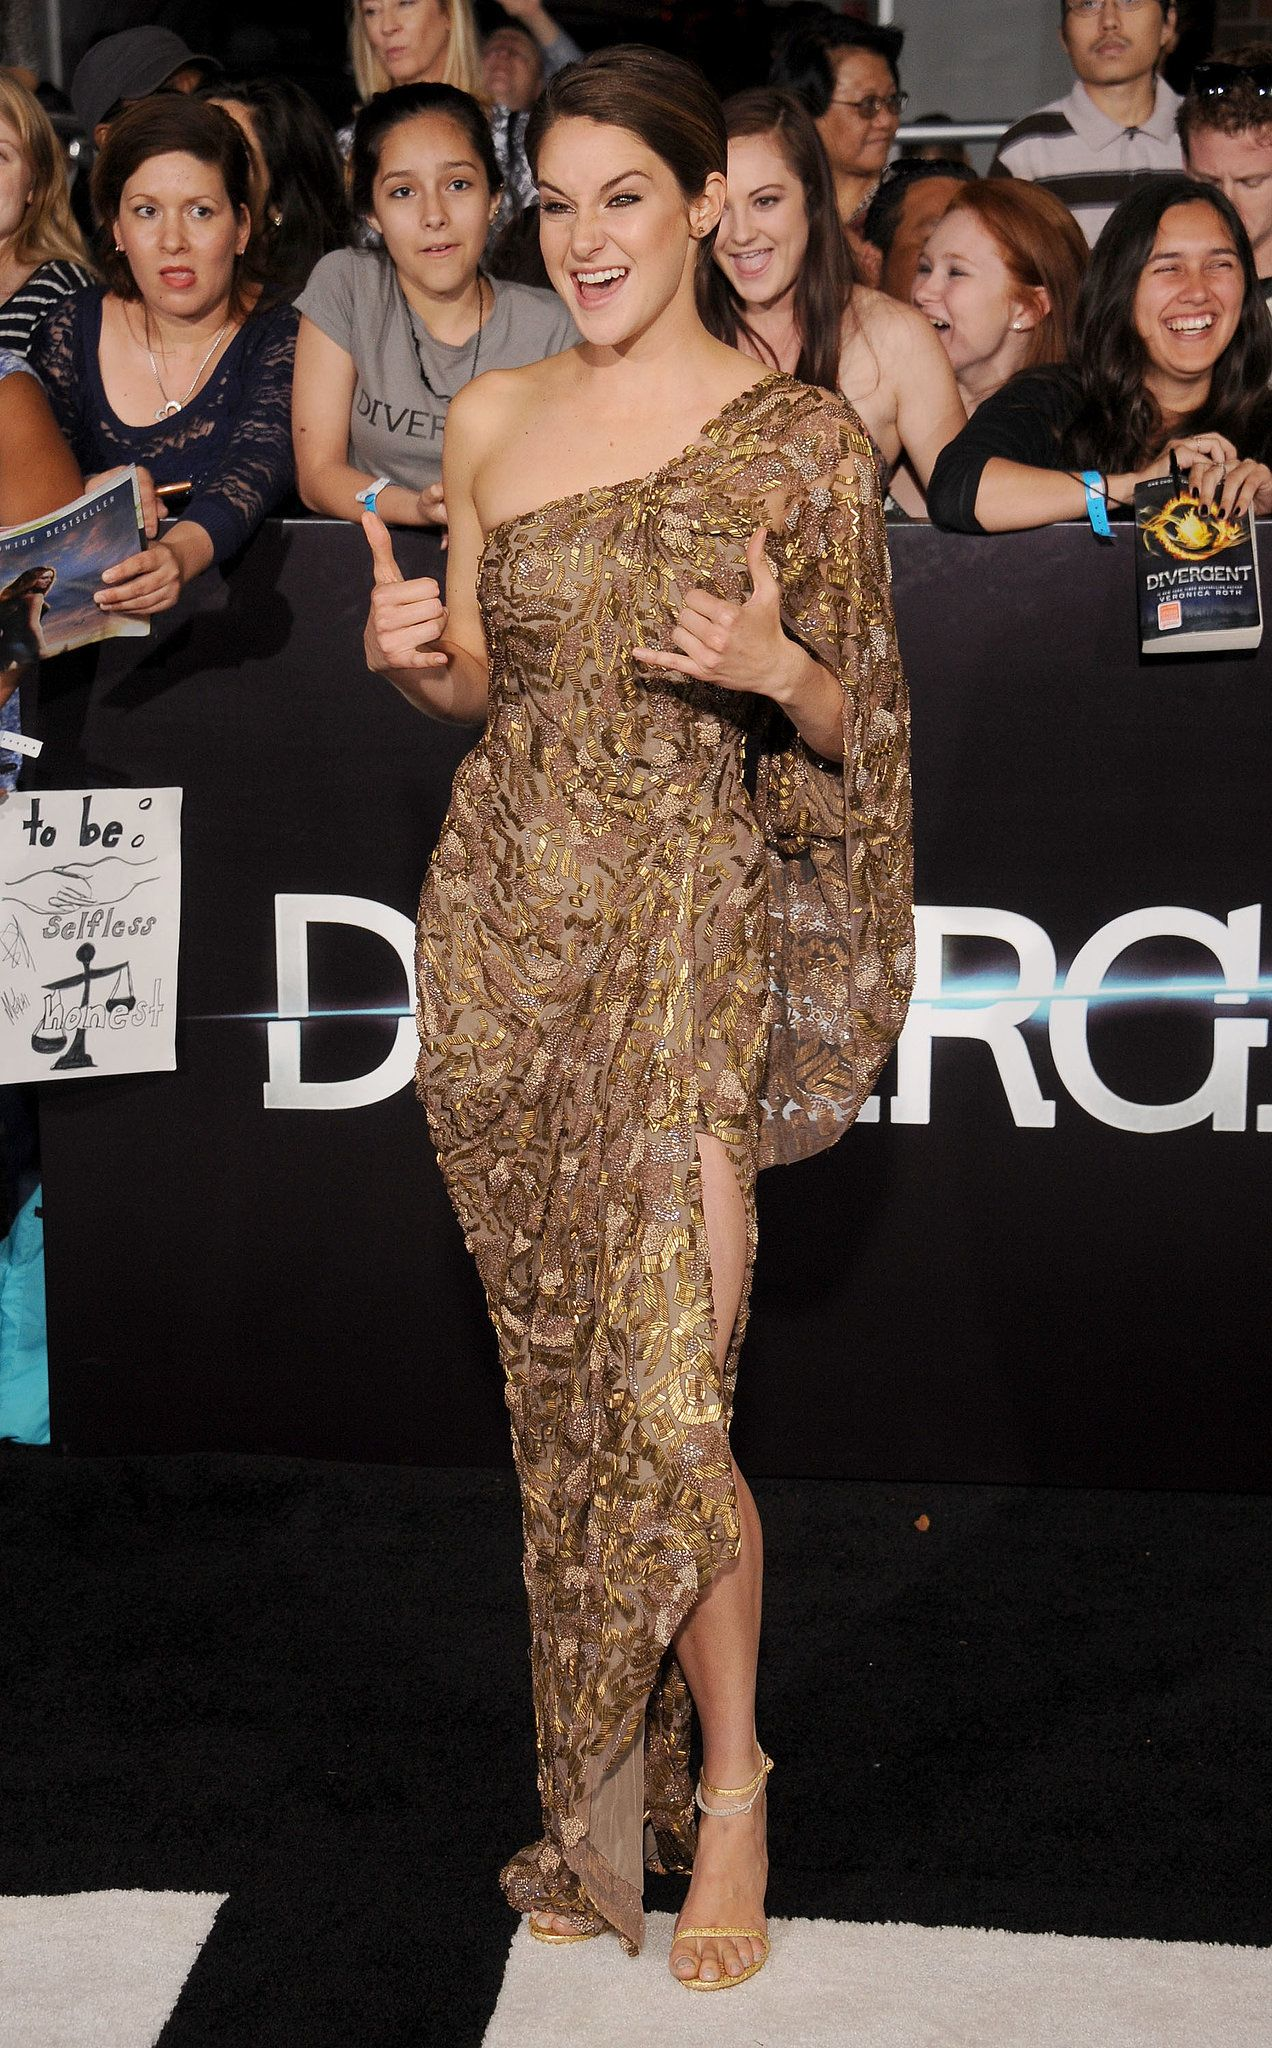 Premiere Shailene Famous La People The Pinterest At Divergent zqranI8Aq